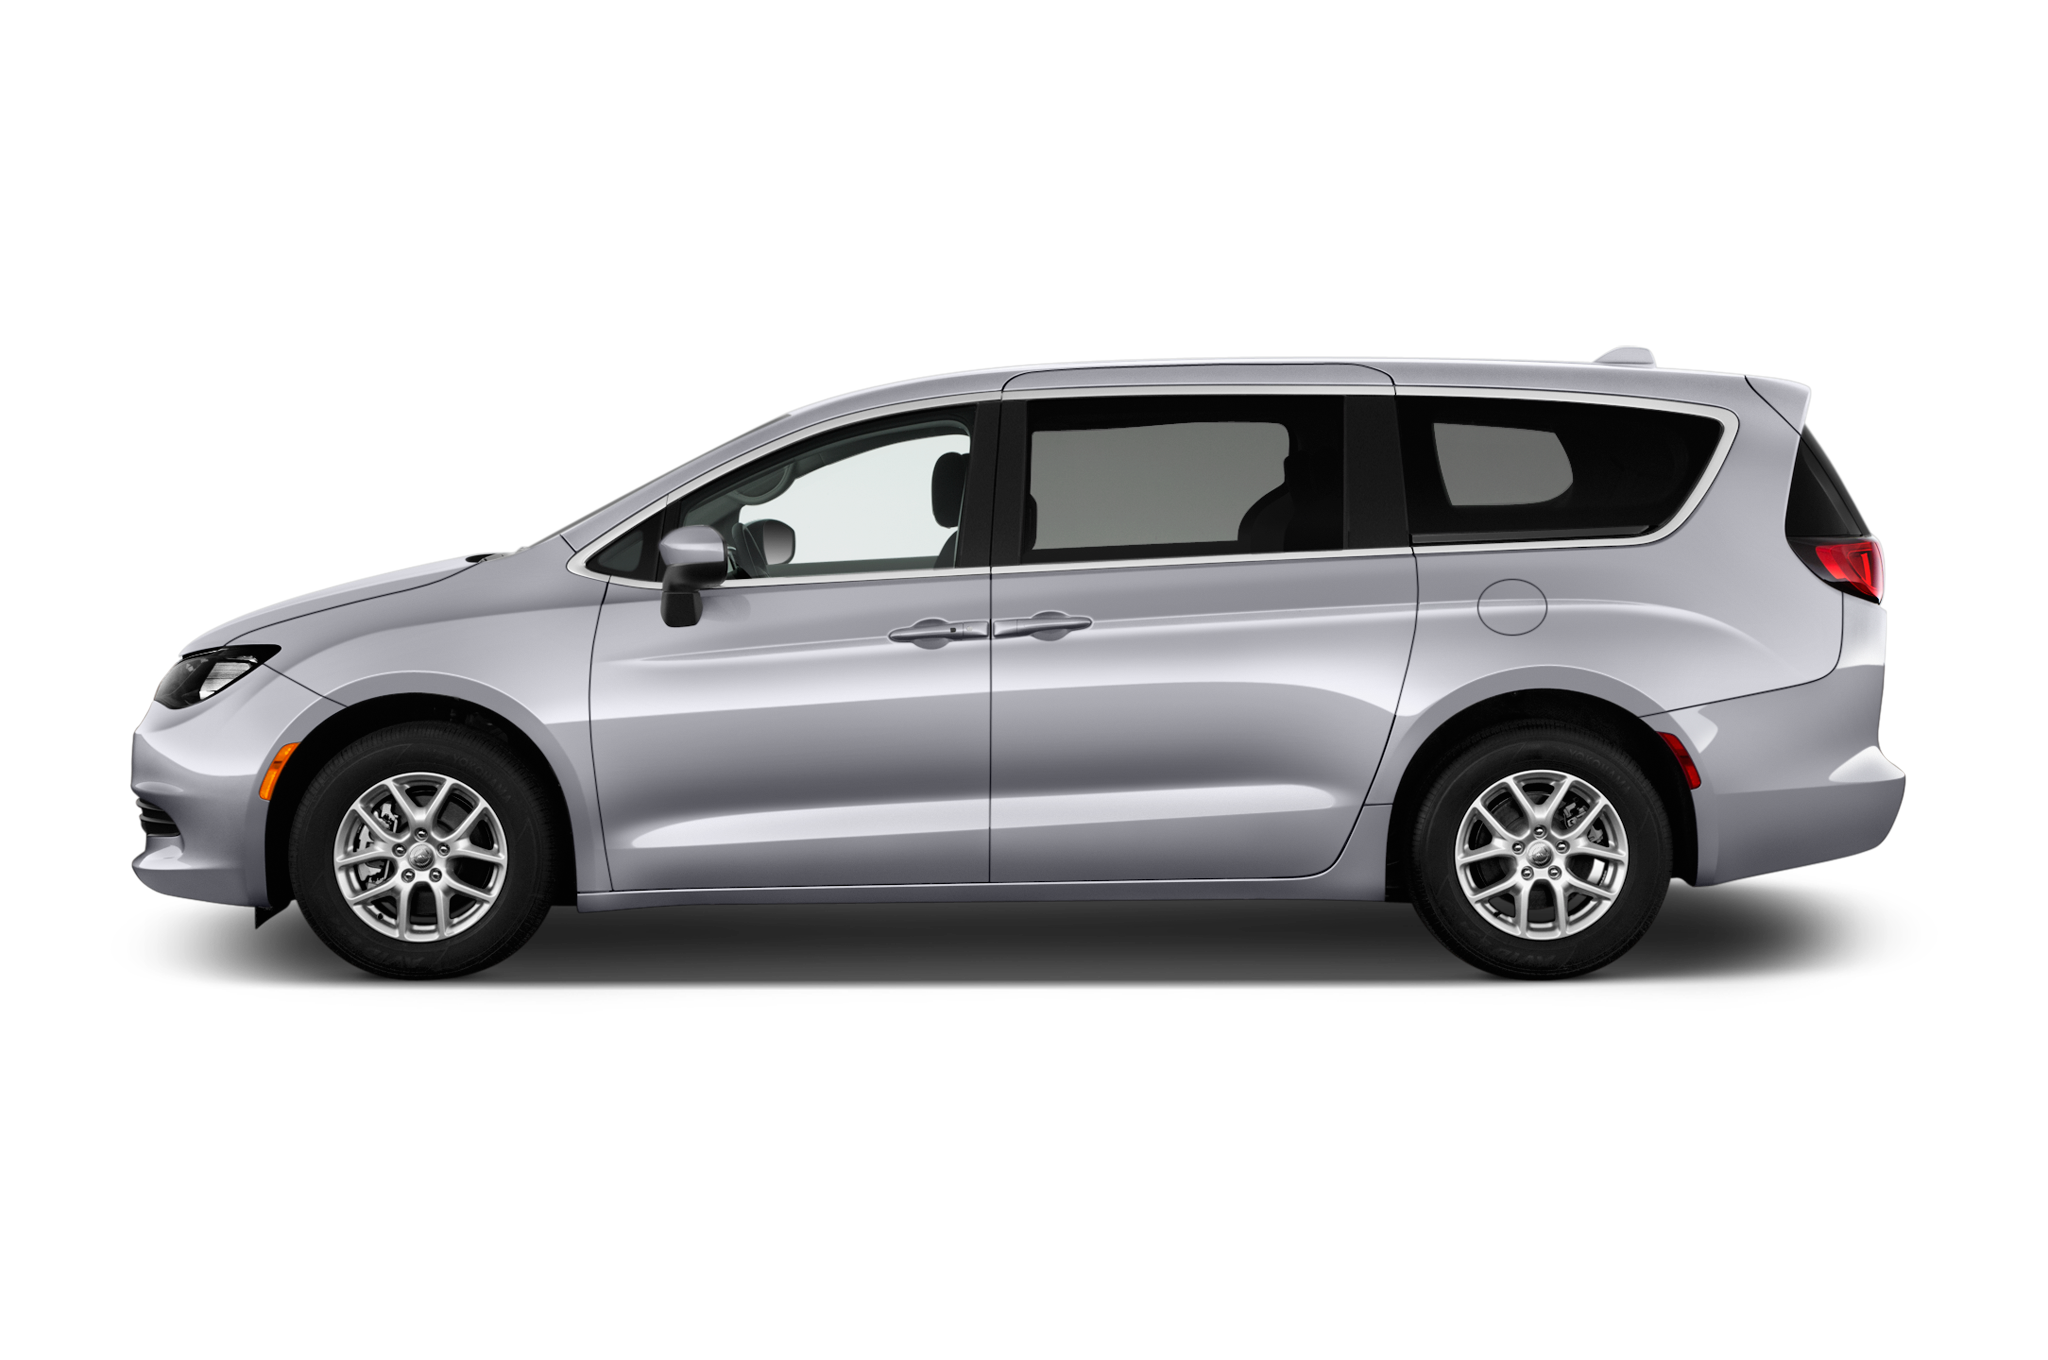 New Chrysler Pacifica Delray Beach FL